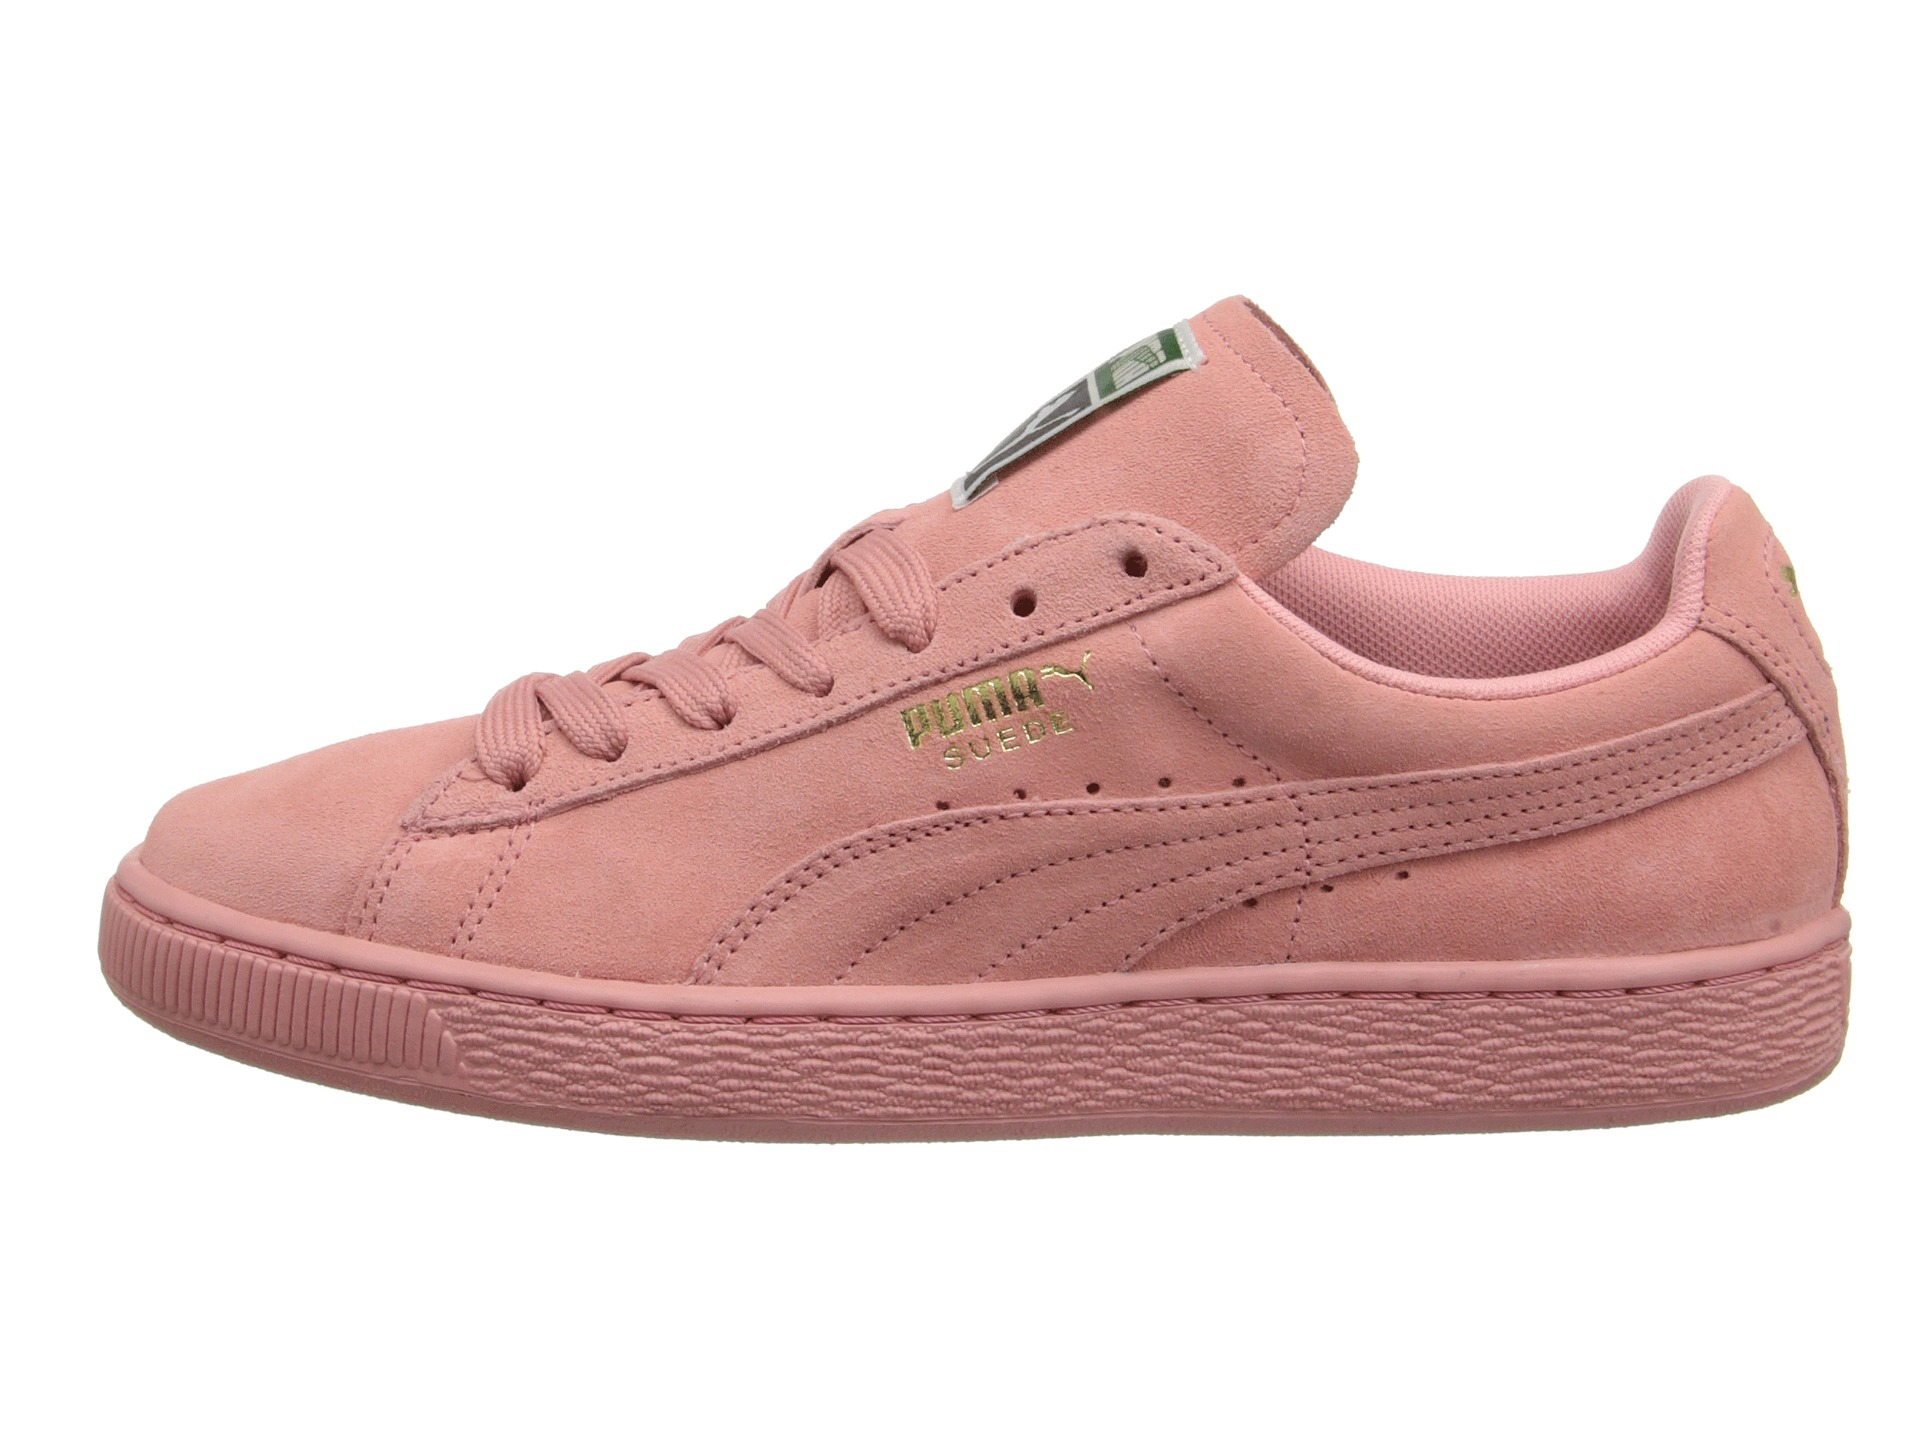 Women's Pink Suede Classic Wns